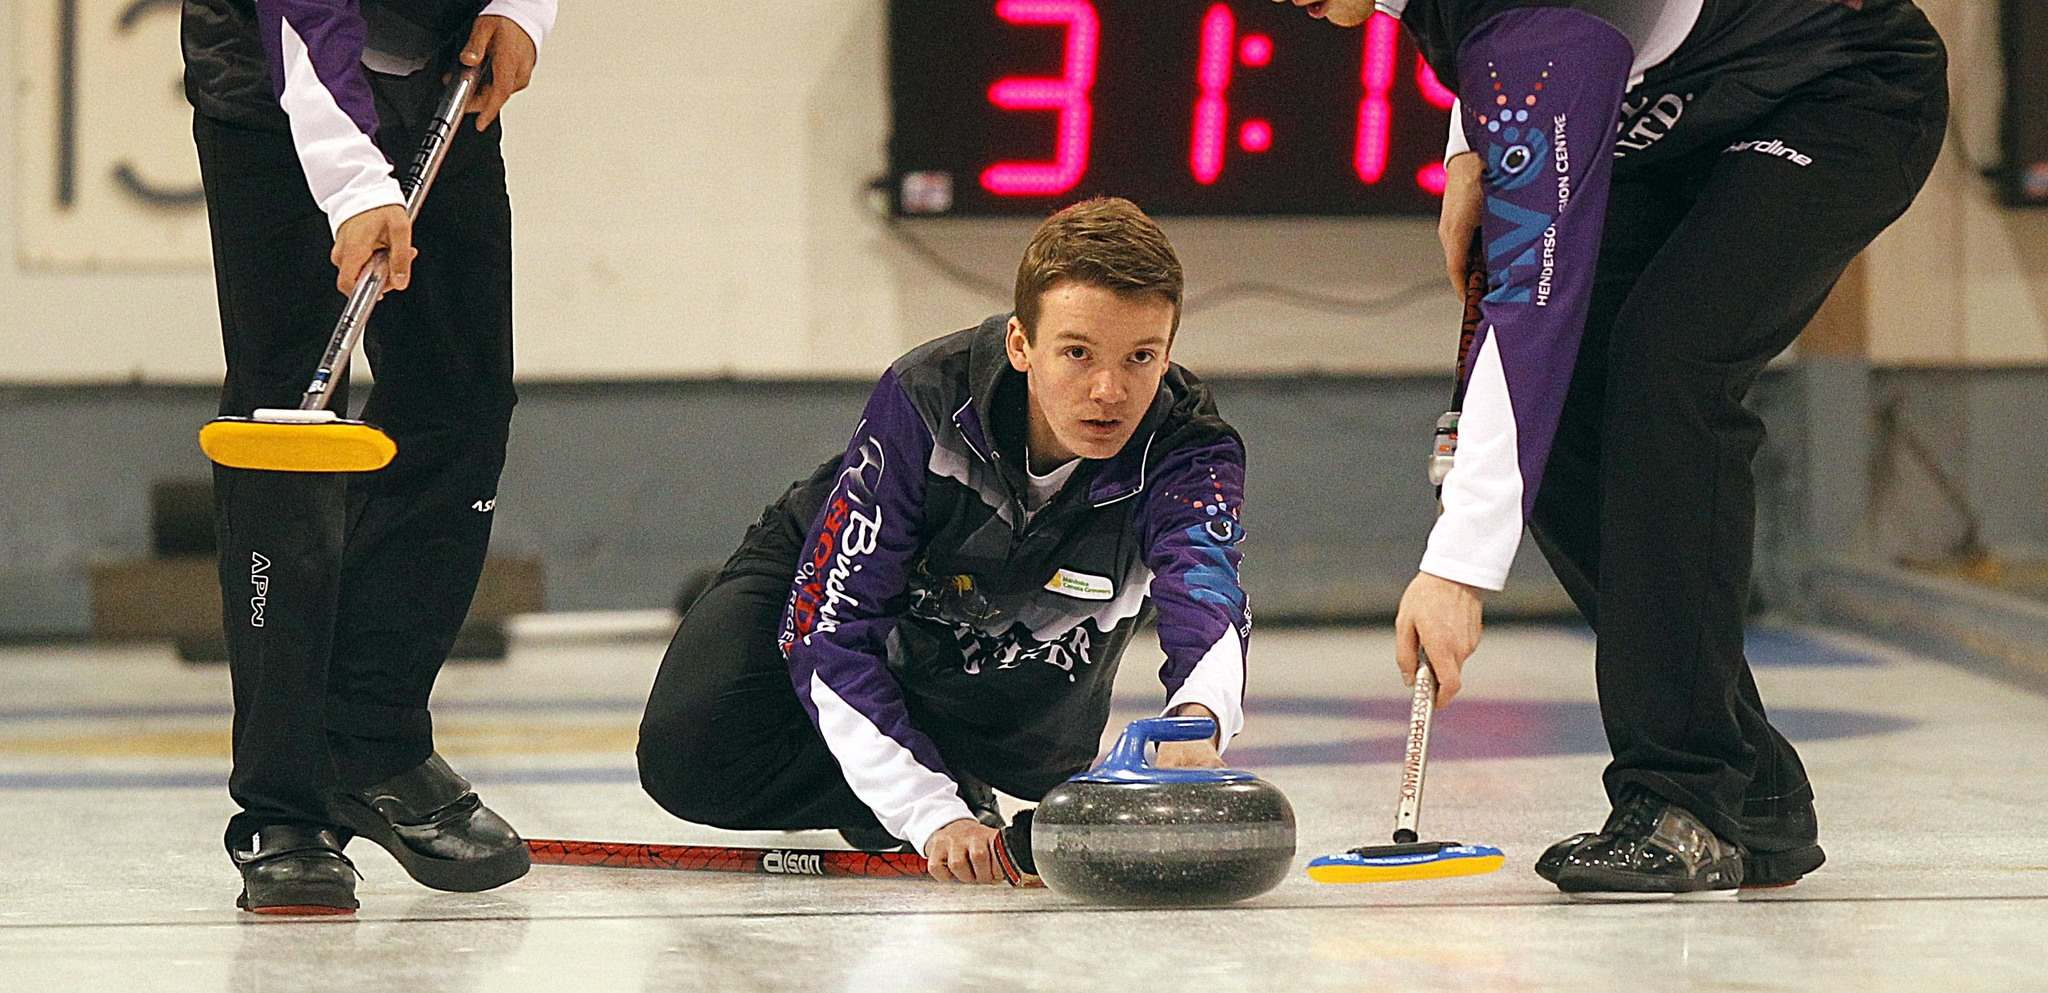 PHIL HOSSACK / WINNIPEG FREE PRESS FILES</p><p>Despited being a perfect 6-0 in round robin play, the Manitoba rink skipped by J.T. Ryan, above, had a disappointing finish Friday night when they were eliminated from the 2017 Canadian Junior Curling Championships in Esquimalt, B.C.</p>